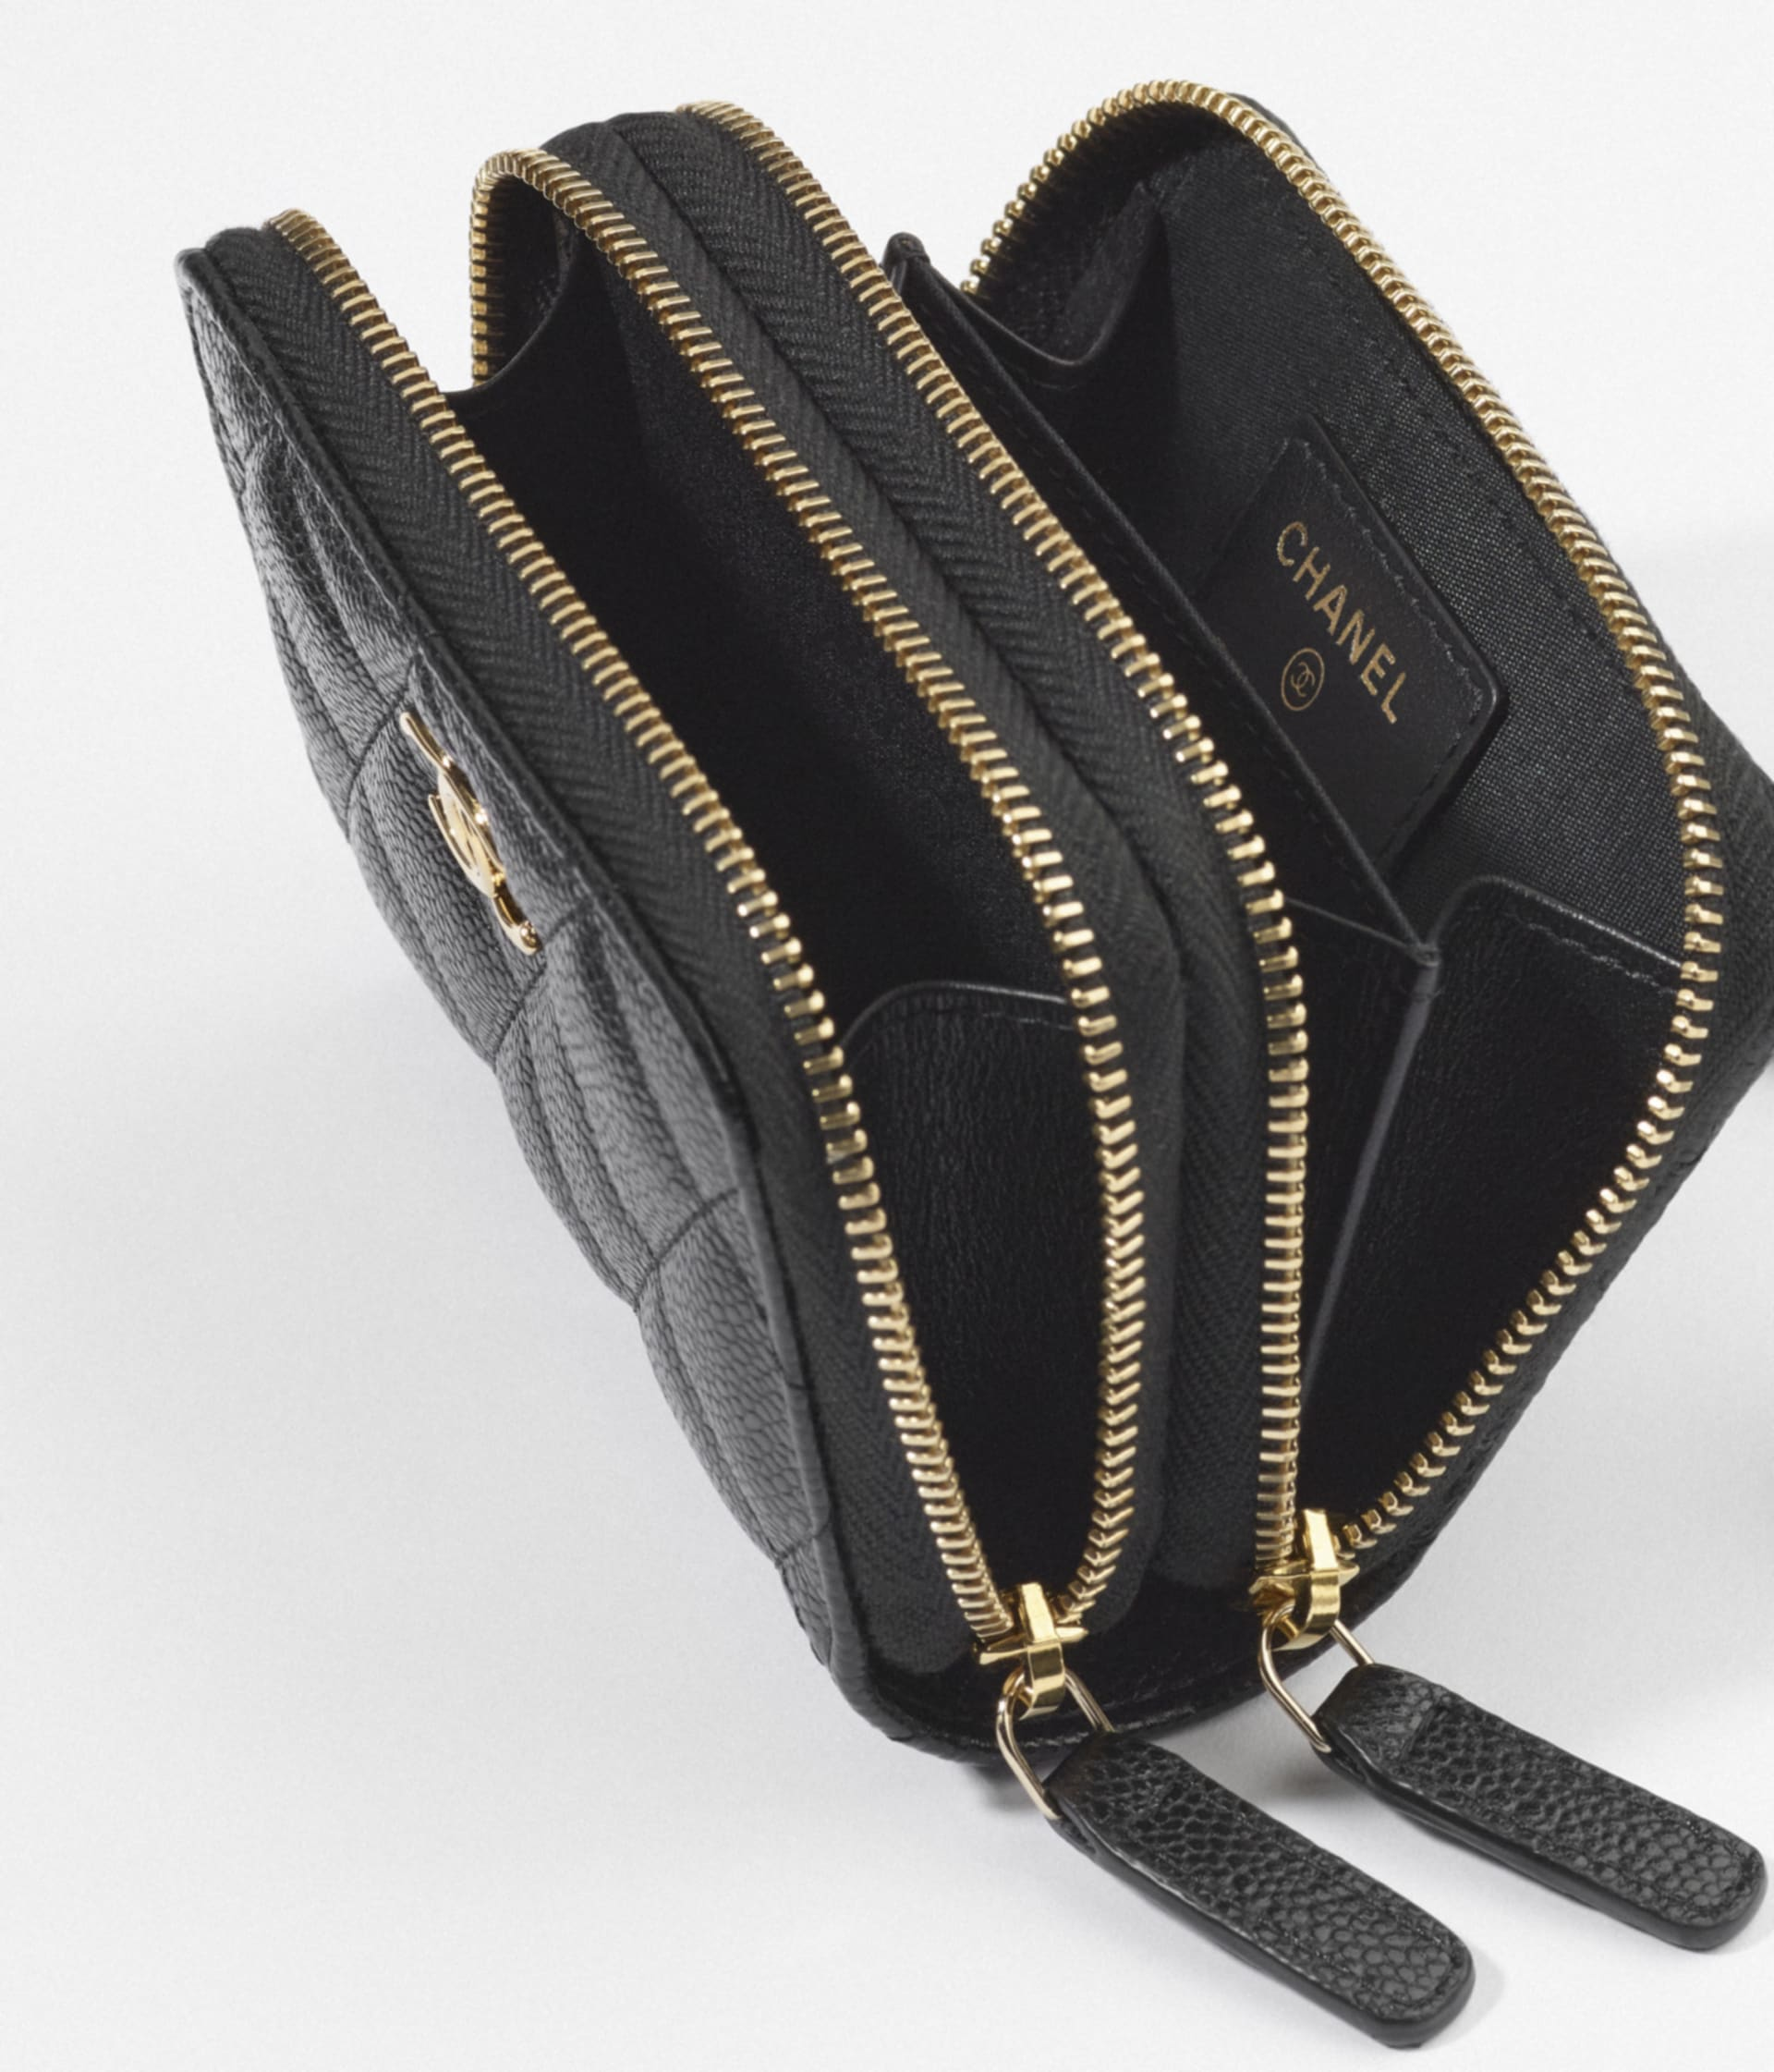 image 2 - Clutch with Chain - Grained Calfskin & Gold-Tone Metal - Black